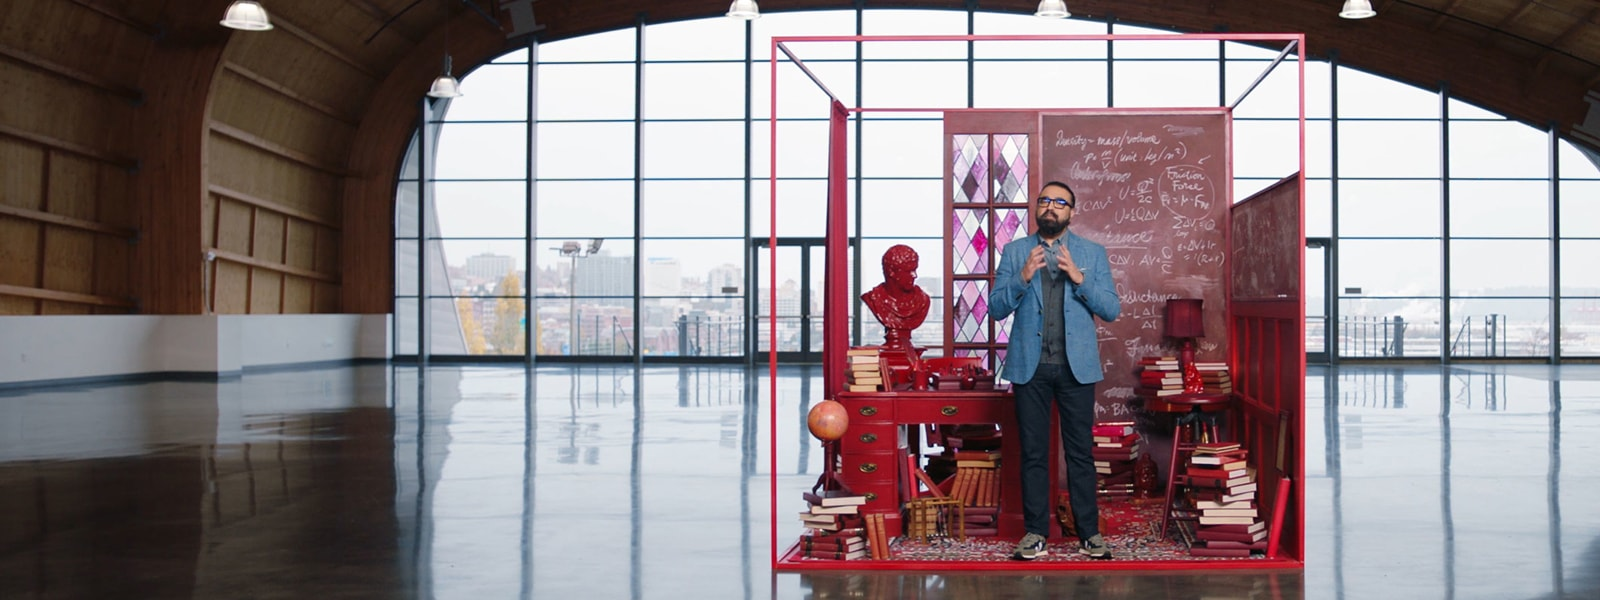 Gurdeep Pall, Microsoft C V P business AI, stands in a large hangar with a stylized red cubicle